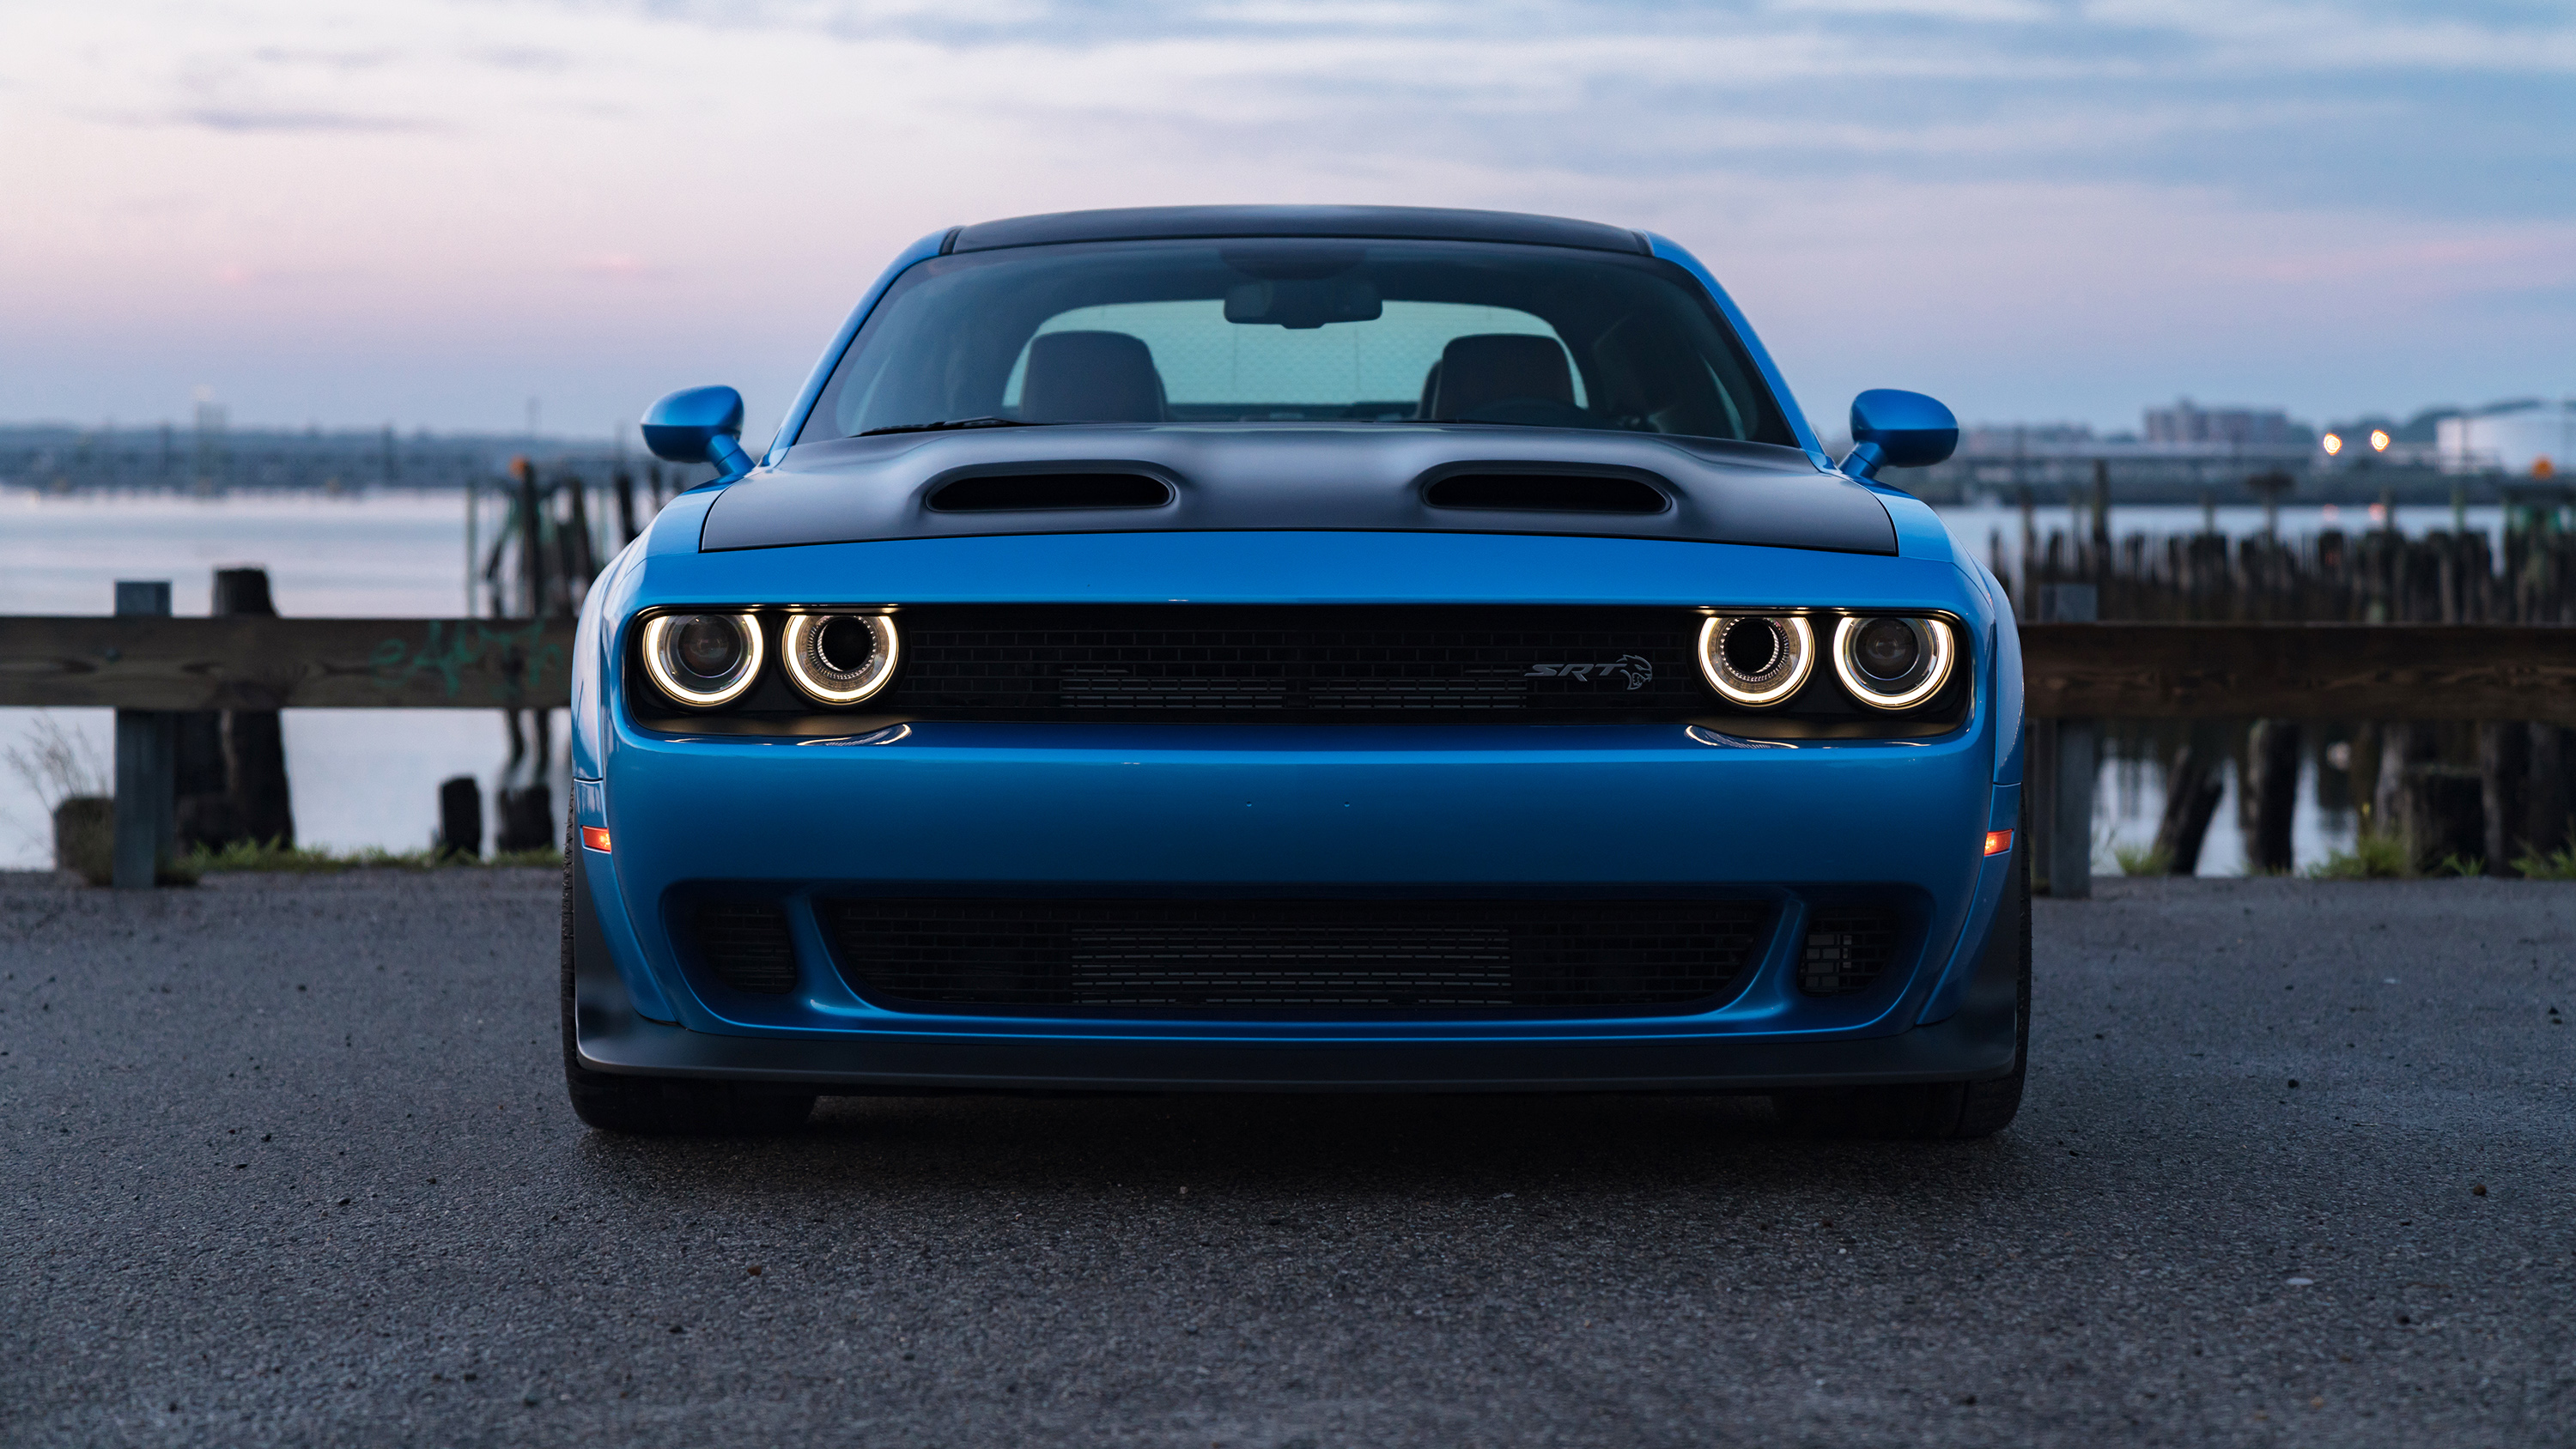 2019 Dodge Challenger Srt Hellcat Redeye Widebody 2 Wallpaper Hd Car Wallpapers Id 11072